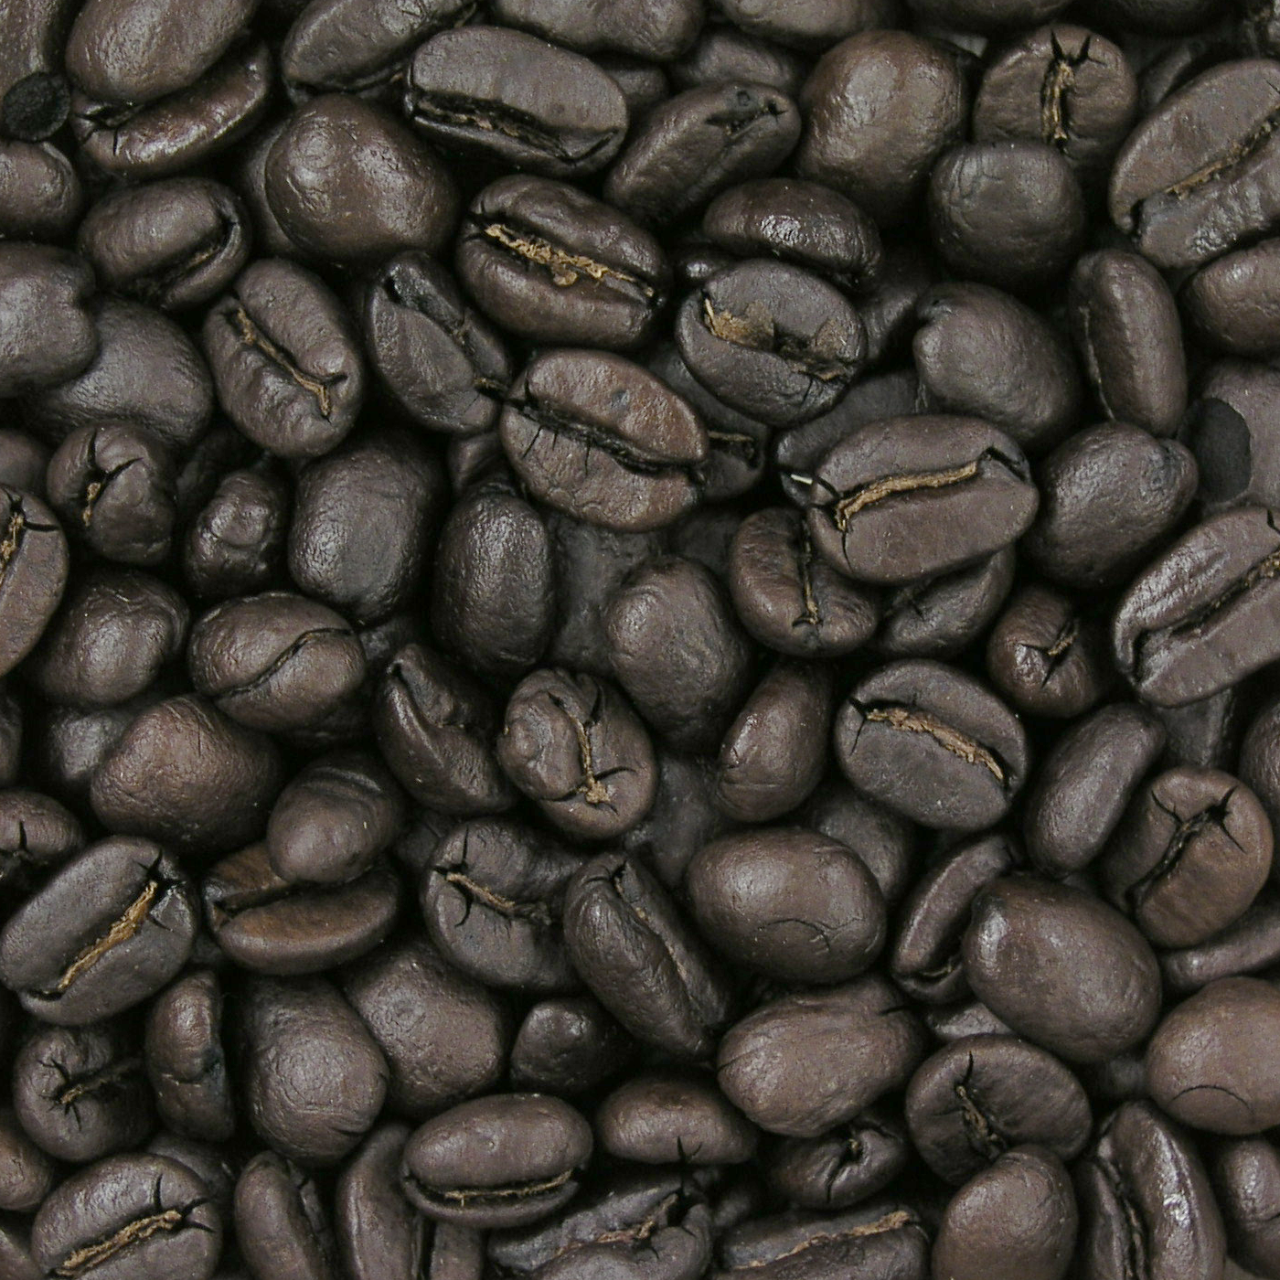 230 °C (446 °F) Vienna Roast Moderate dark brown with light surface oil, more bittersweet, caramel-y flavor, acidity muted. In the middle of second crack. Occasionally used for espresso blends.